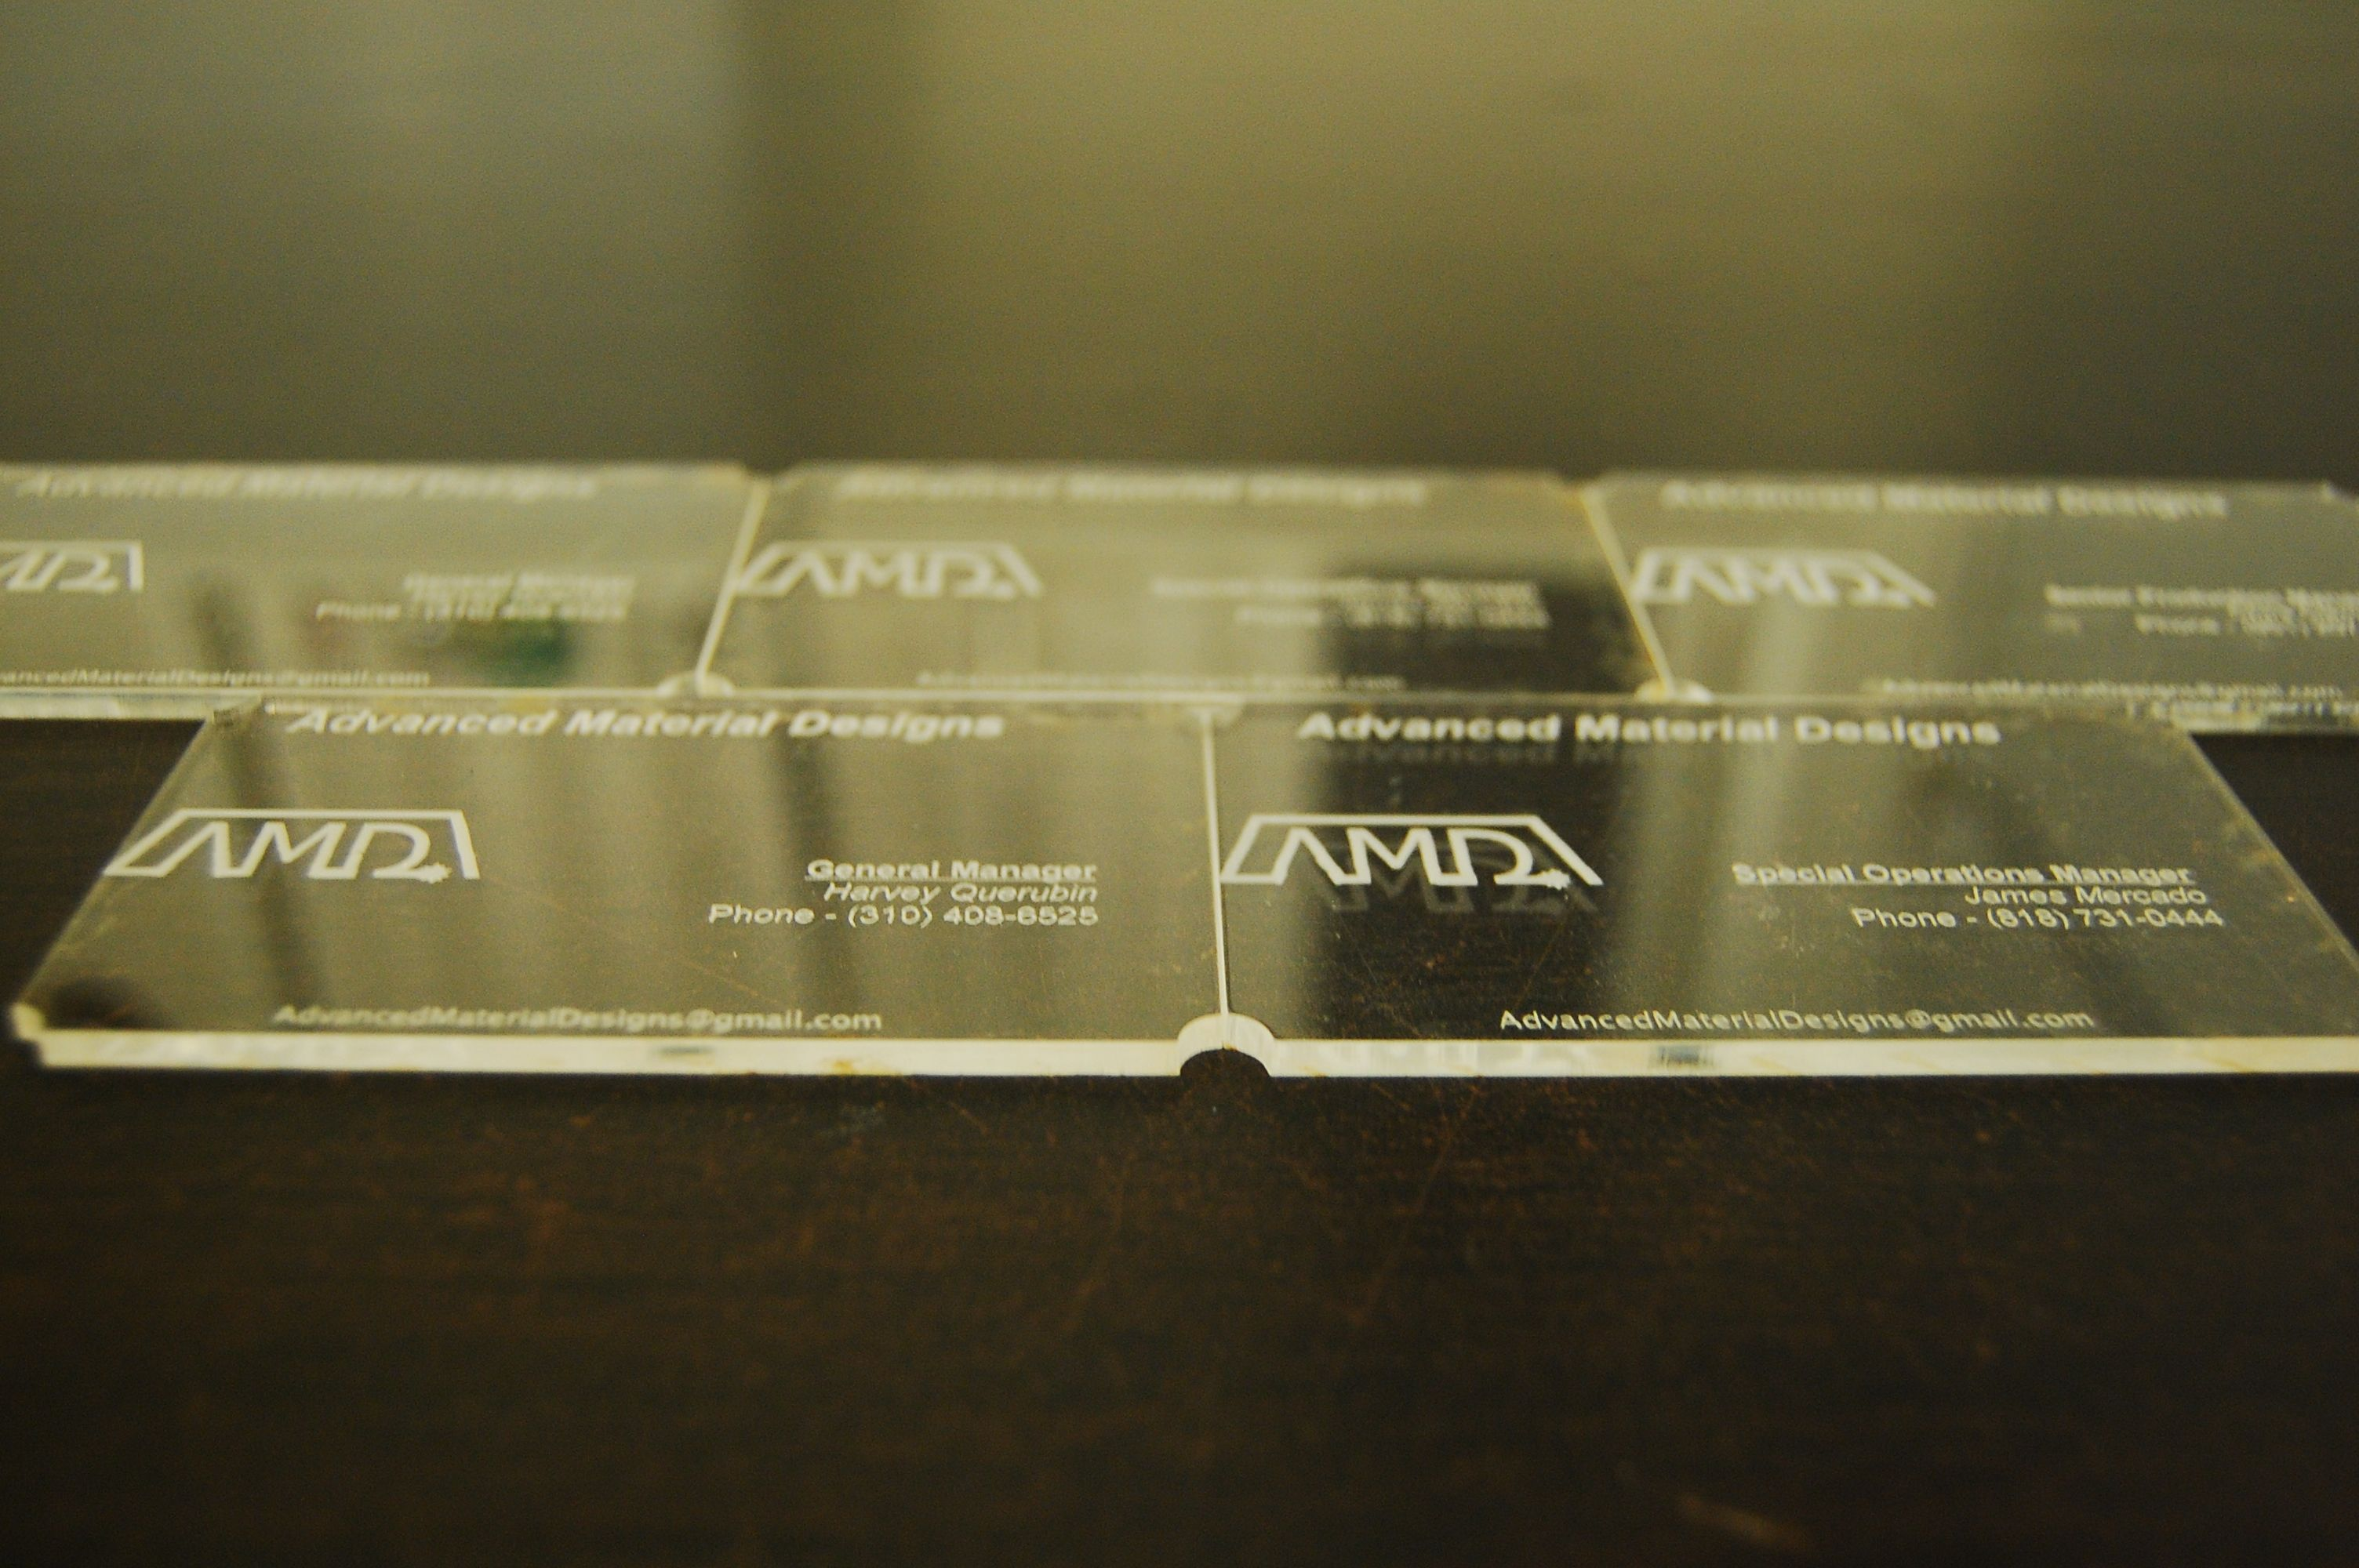 Specialized Acrylic Business Cards by AMD advancedmaterialdesigns ...